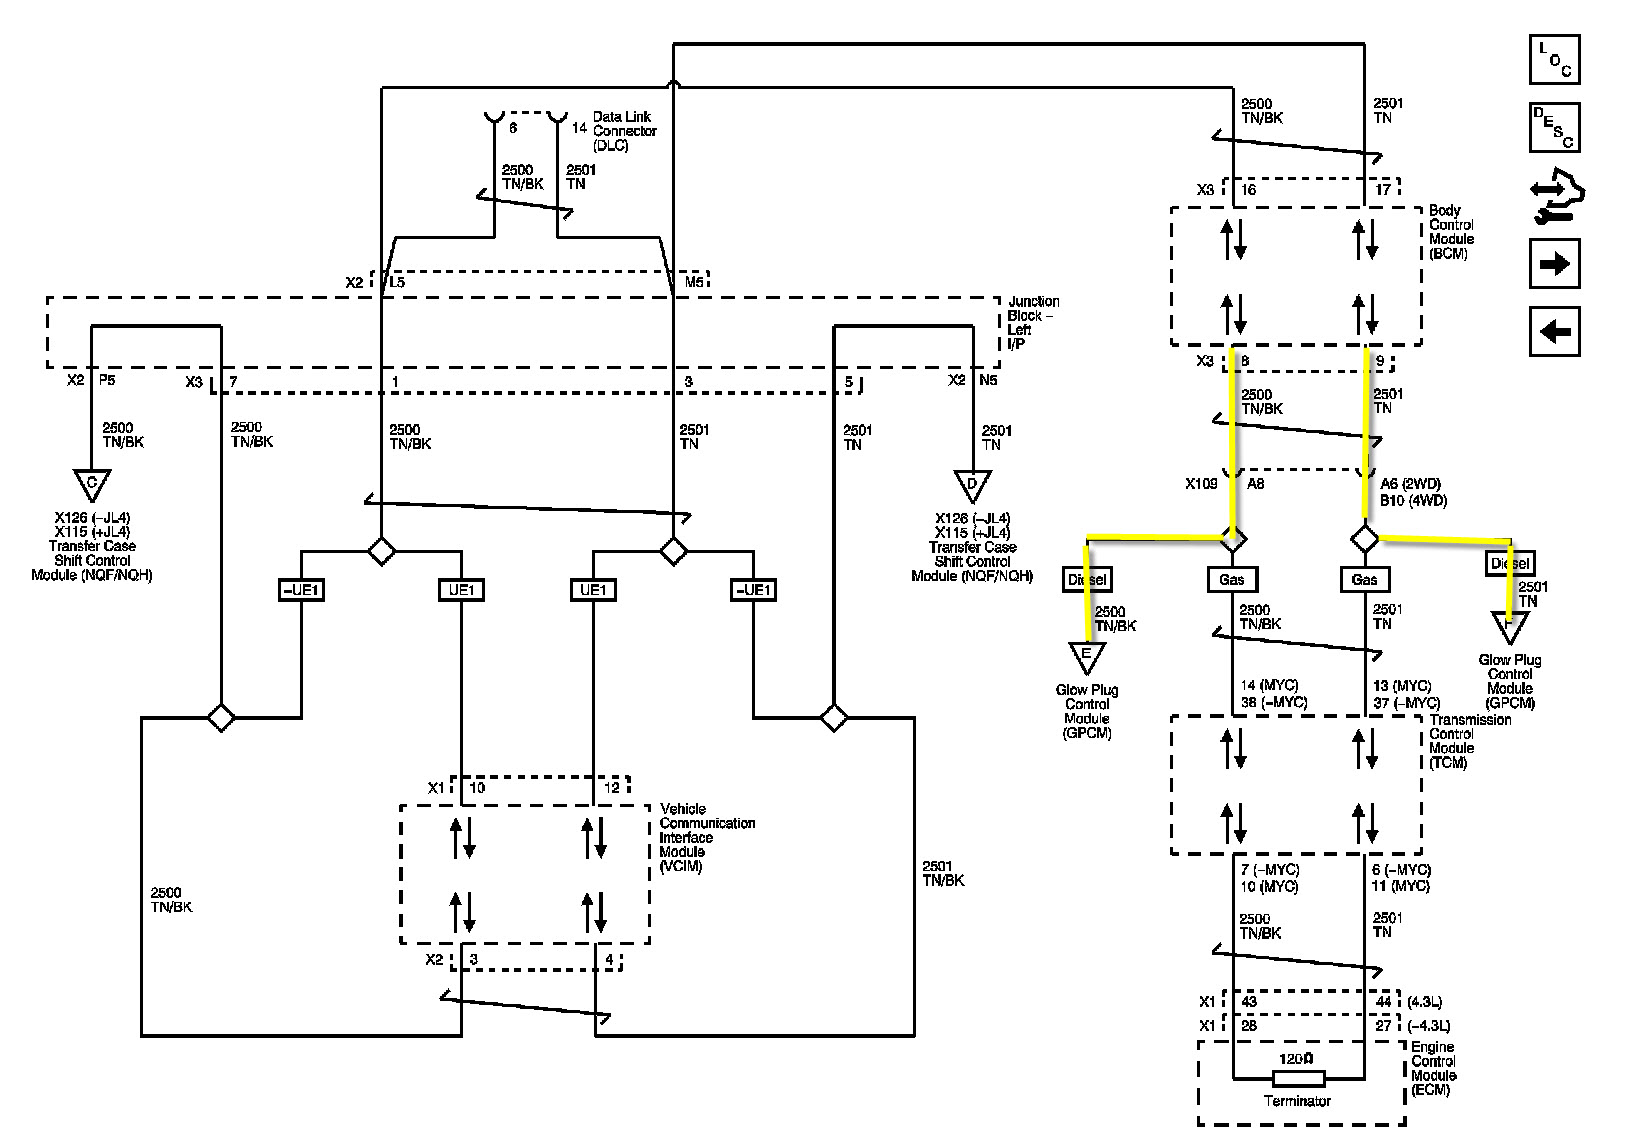 fd984d71-43ba-4a3f-8dd4-b1faea8fbd50_2007 Chevy 2500 diesel high speed LAN diagram.jpg